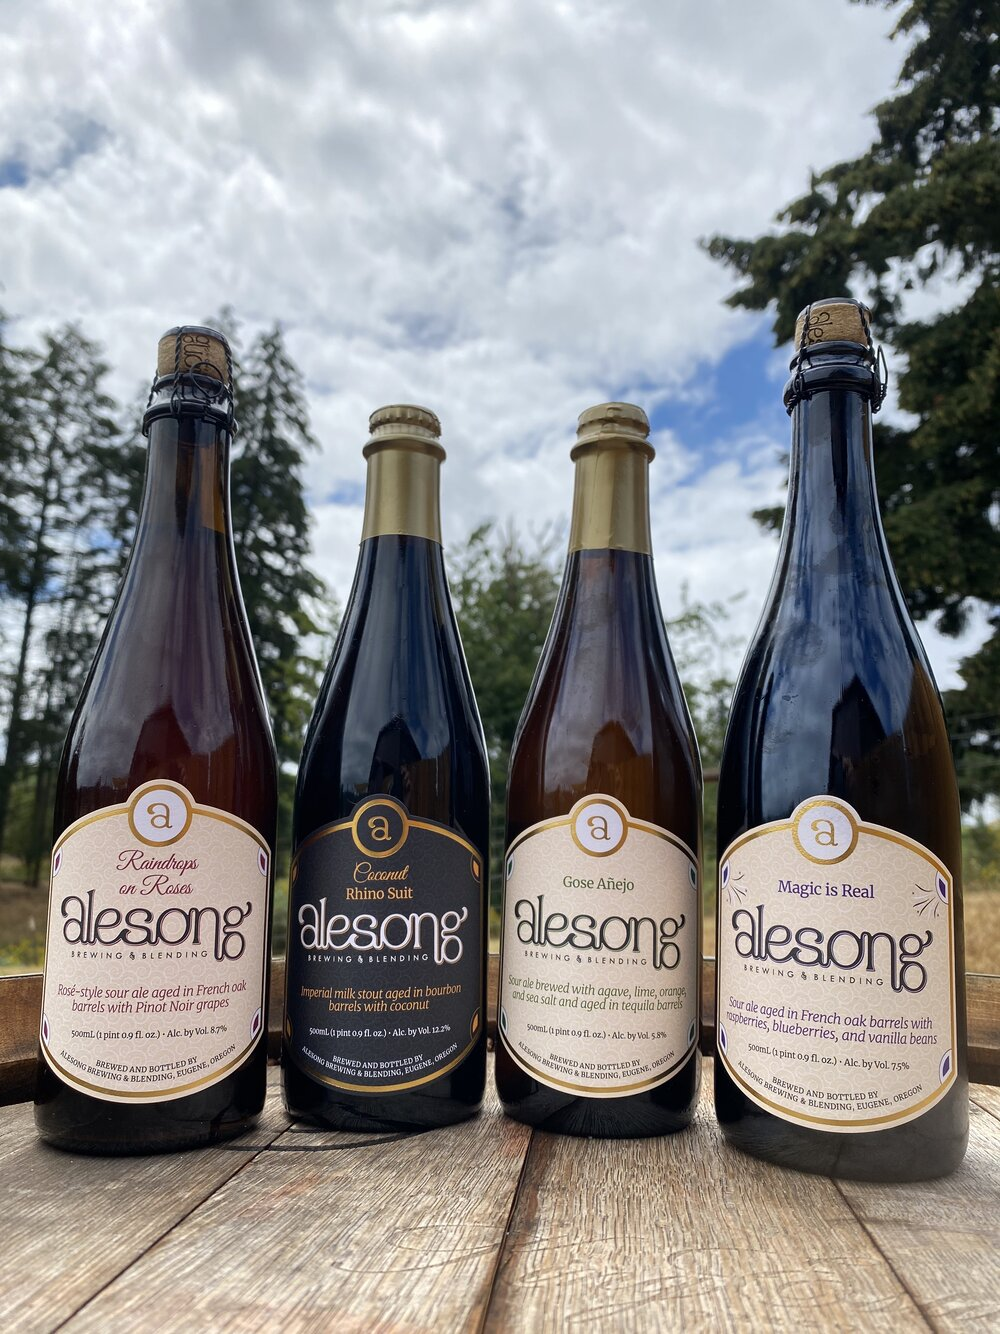 August 2020 beer releases from Alesong Brewing & Blending - Raindrops on Roses, Gose Añejo, Coconut Rhino Suit, and Magic is Real. (image courtesy of Alesong Brewing & Blending)